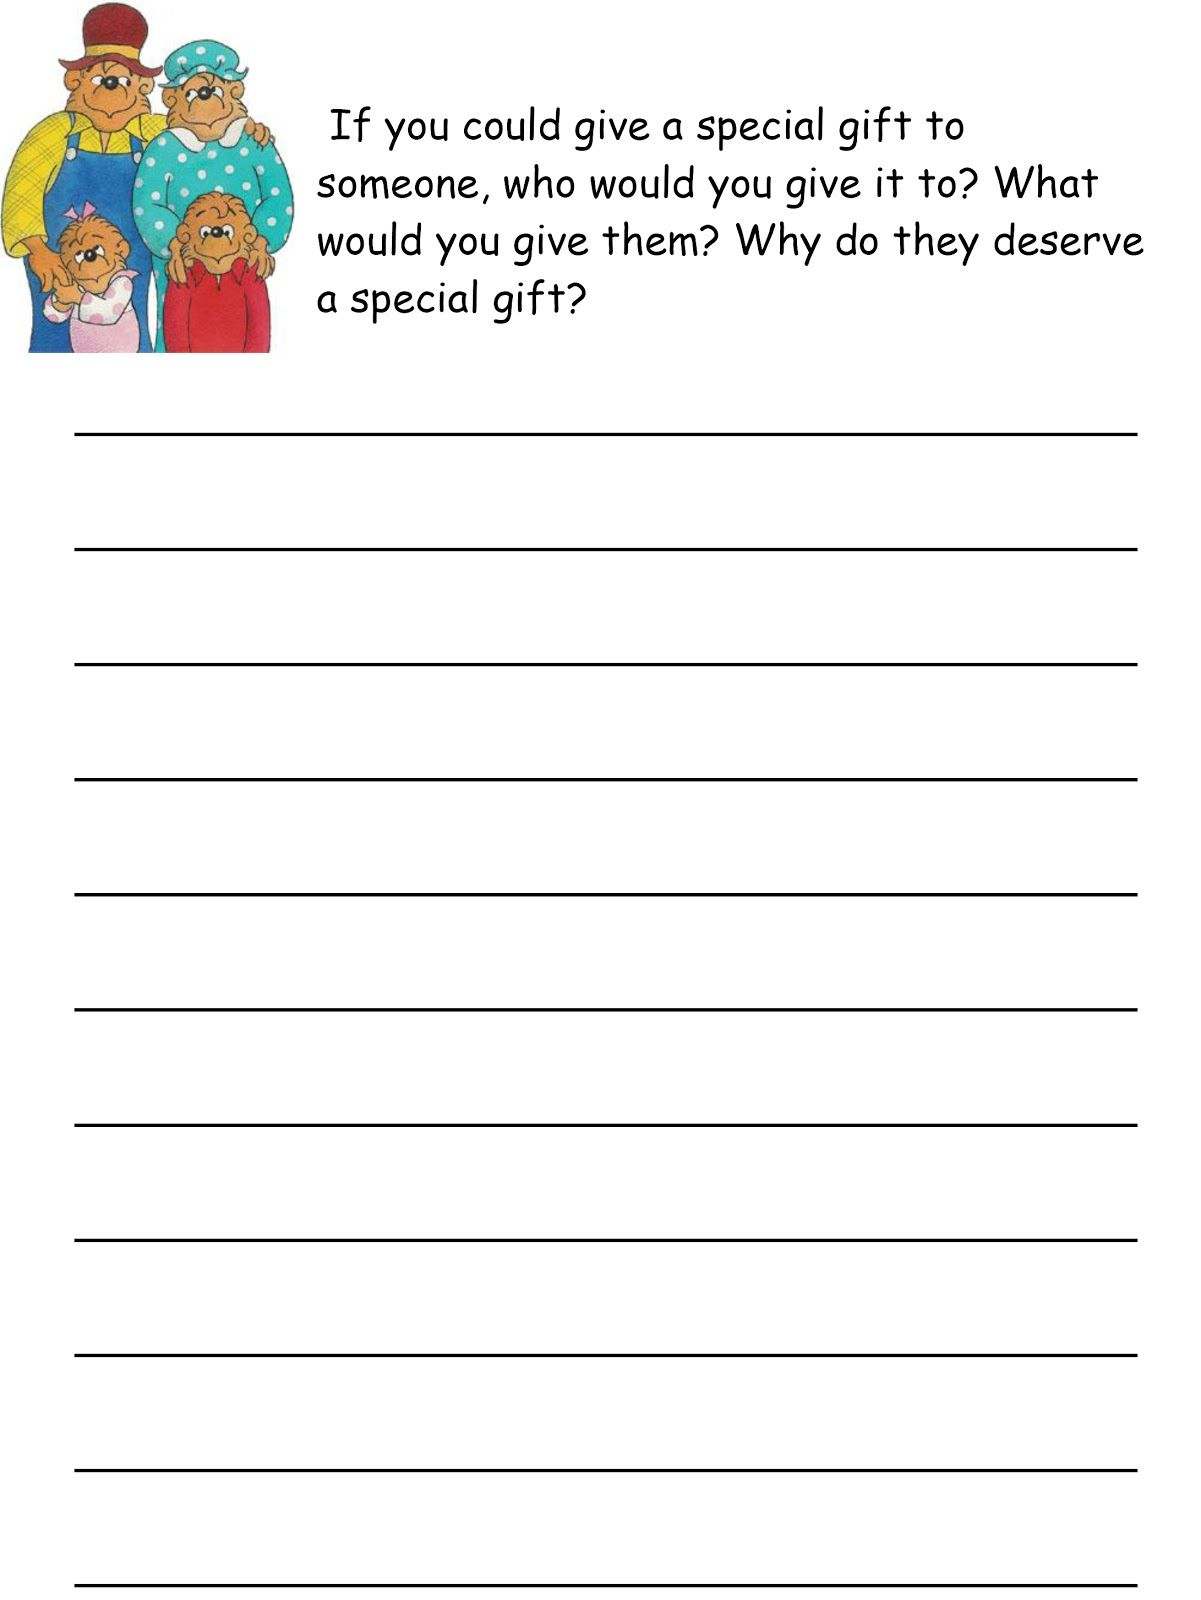 I Love This Time Of Year Because There Are So Many Wonderful Books And Activ Handwriting Worksheets For Kids Free Handwriting Worksheets Handwriting Worksheets [ 1600 x 1201 Pixel ]